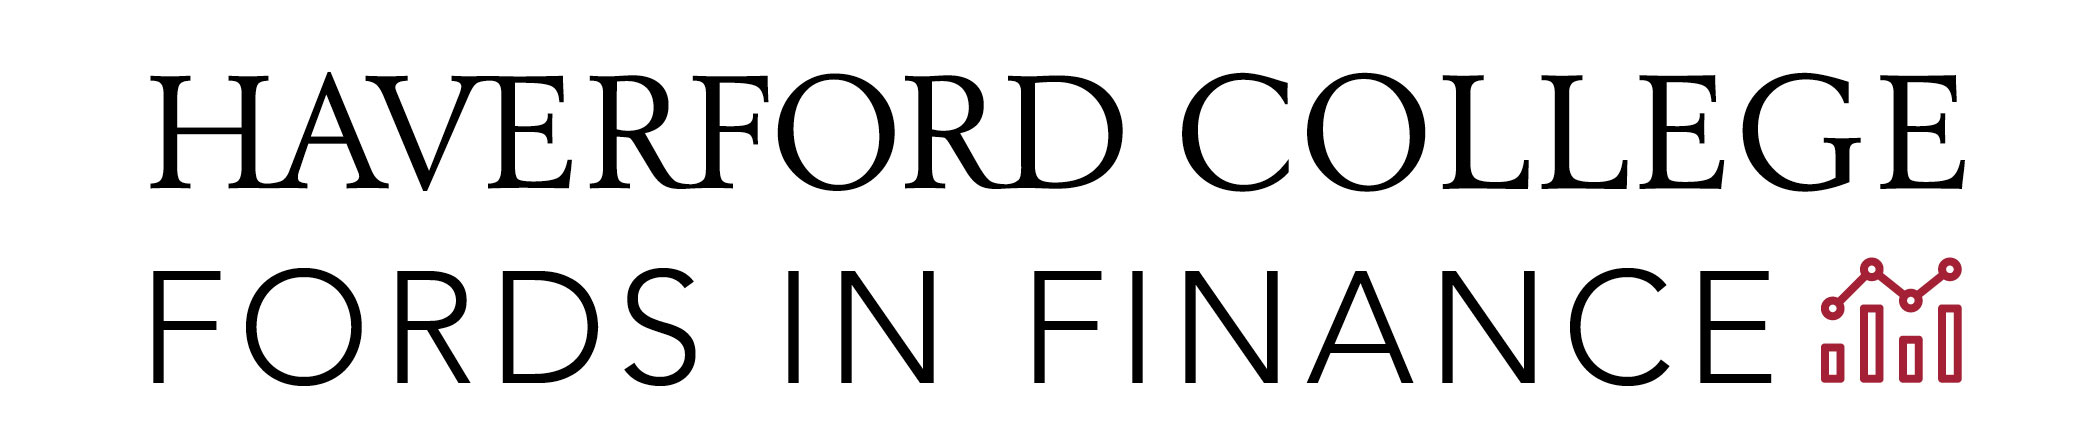 Fords in Finance logo